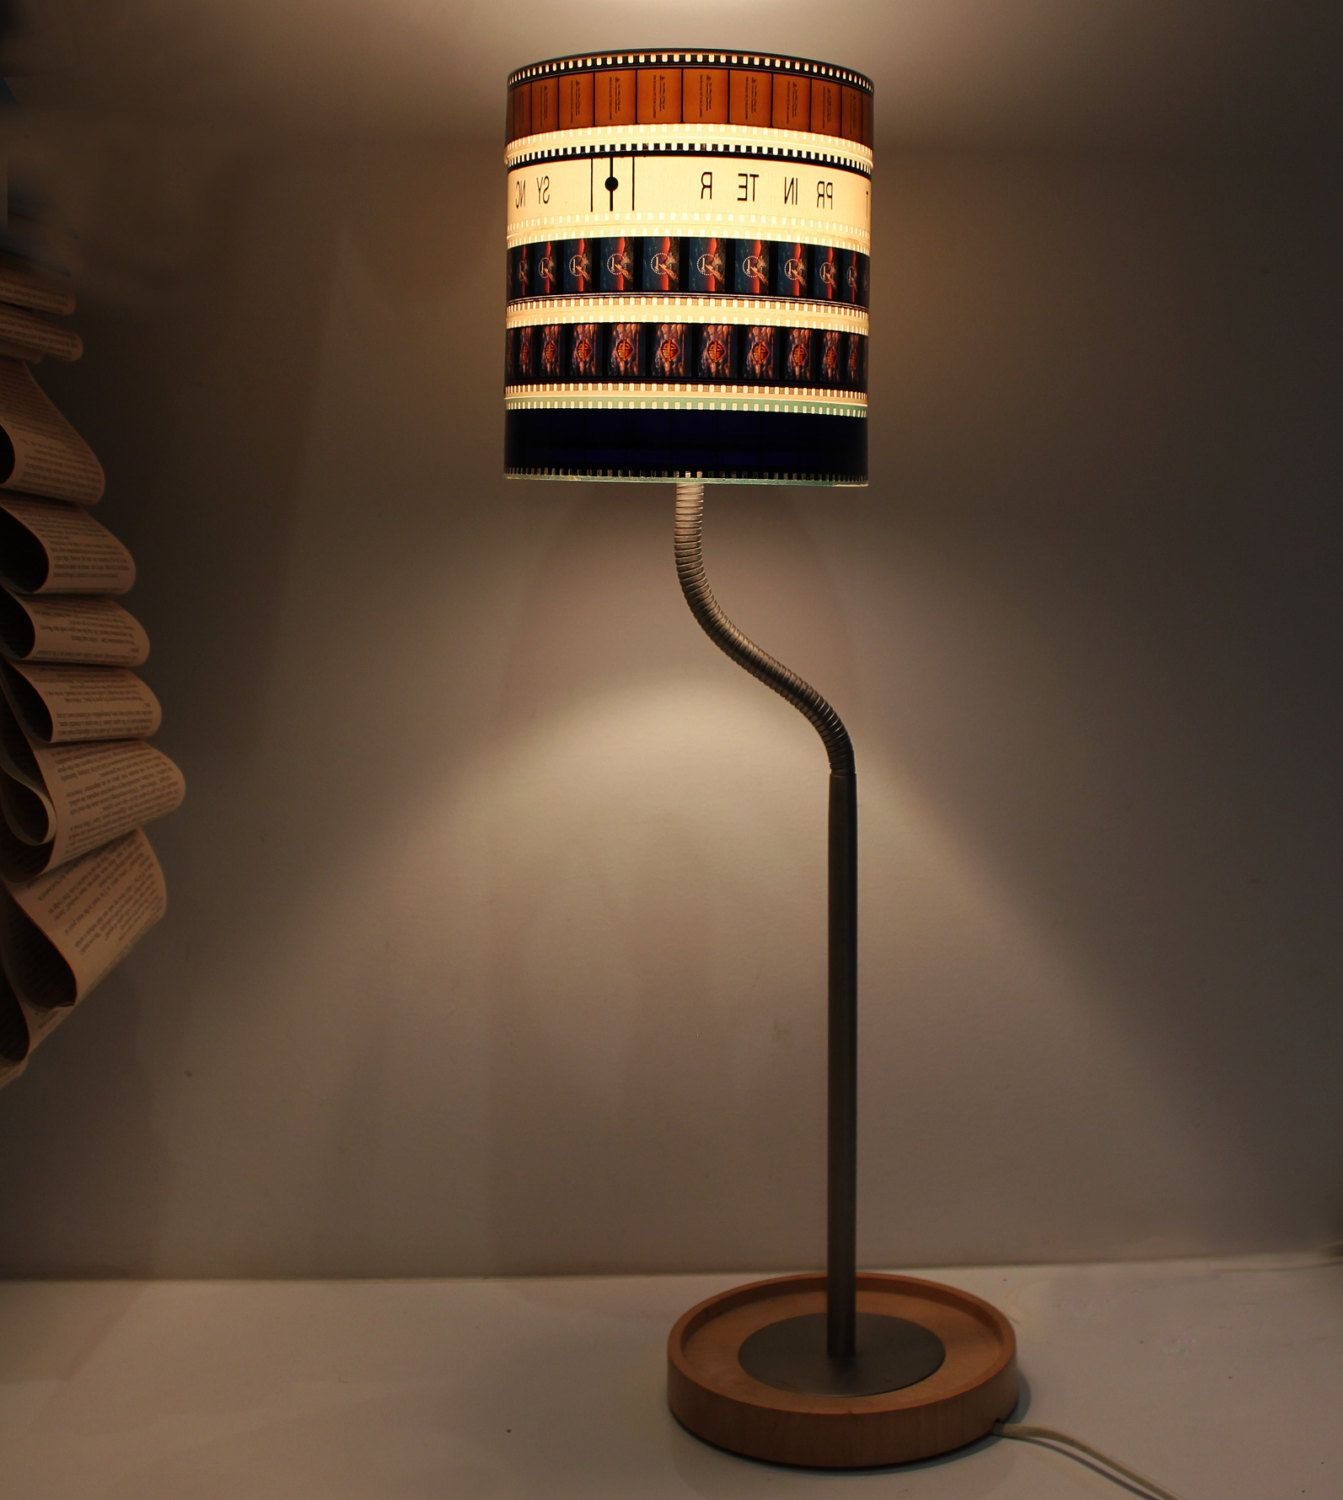 Vintage Movie Reel Film Lamp Shade Lamp Cool Lamps Lamp Shade